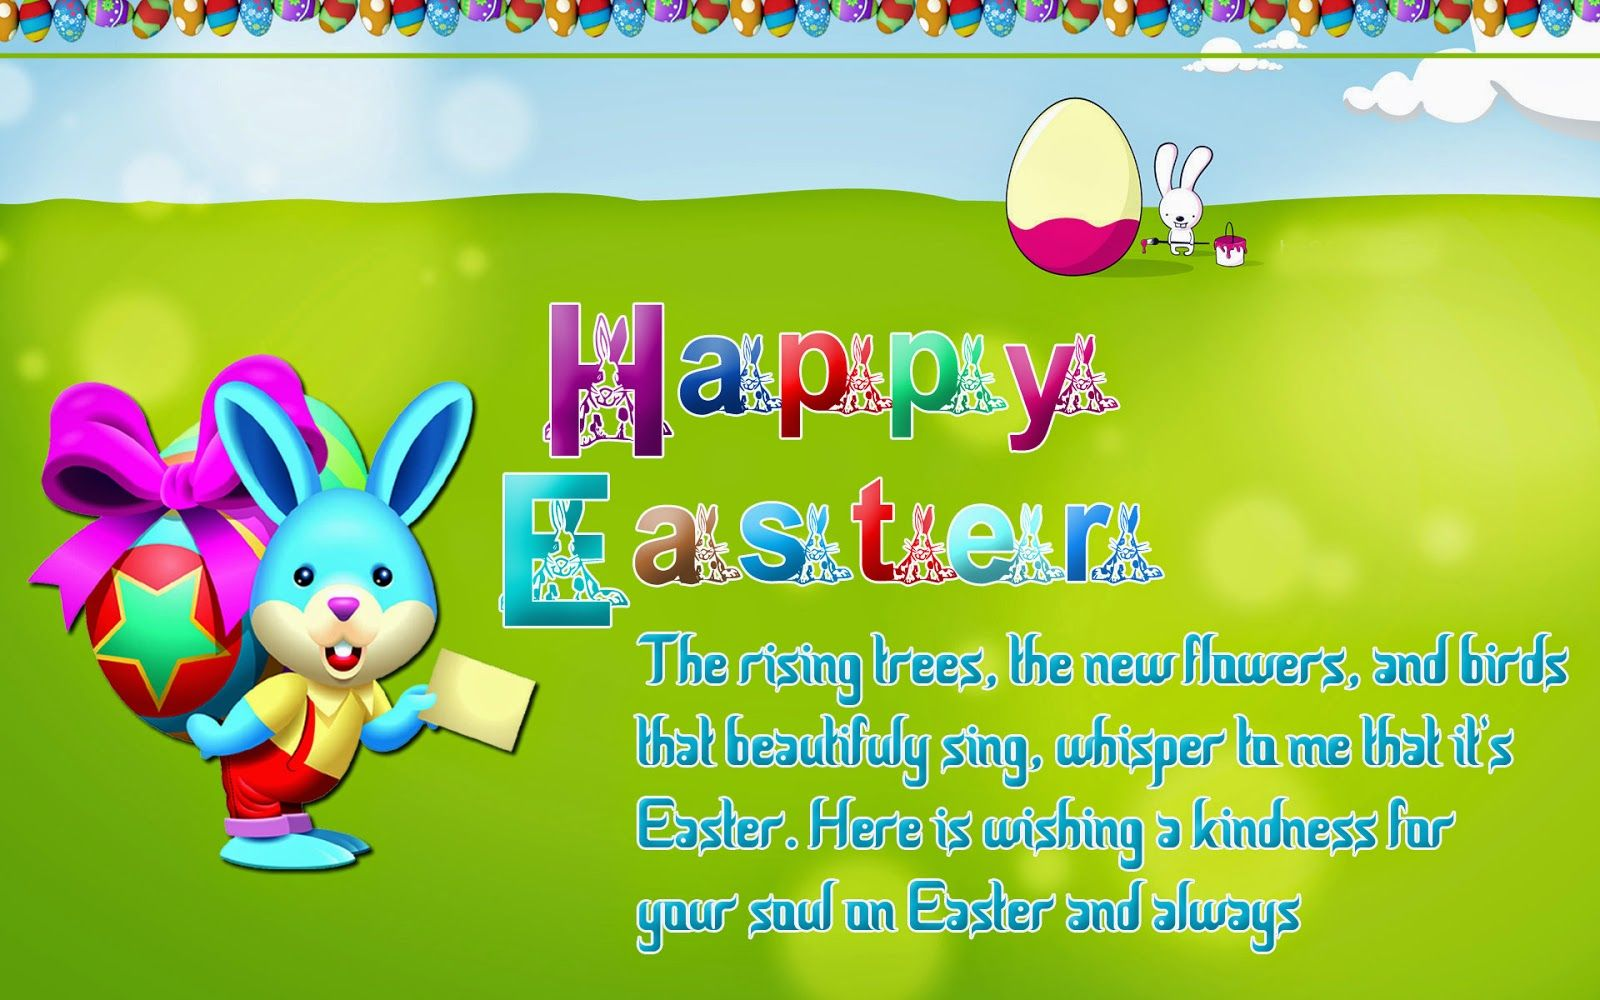 Happy ester sunday wishes sms messages wallpaper easter happy ester sunday wishes sms messages wallpaper kristyandbryce Choice Image